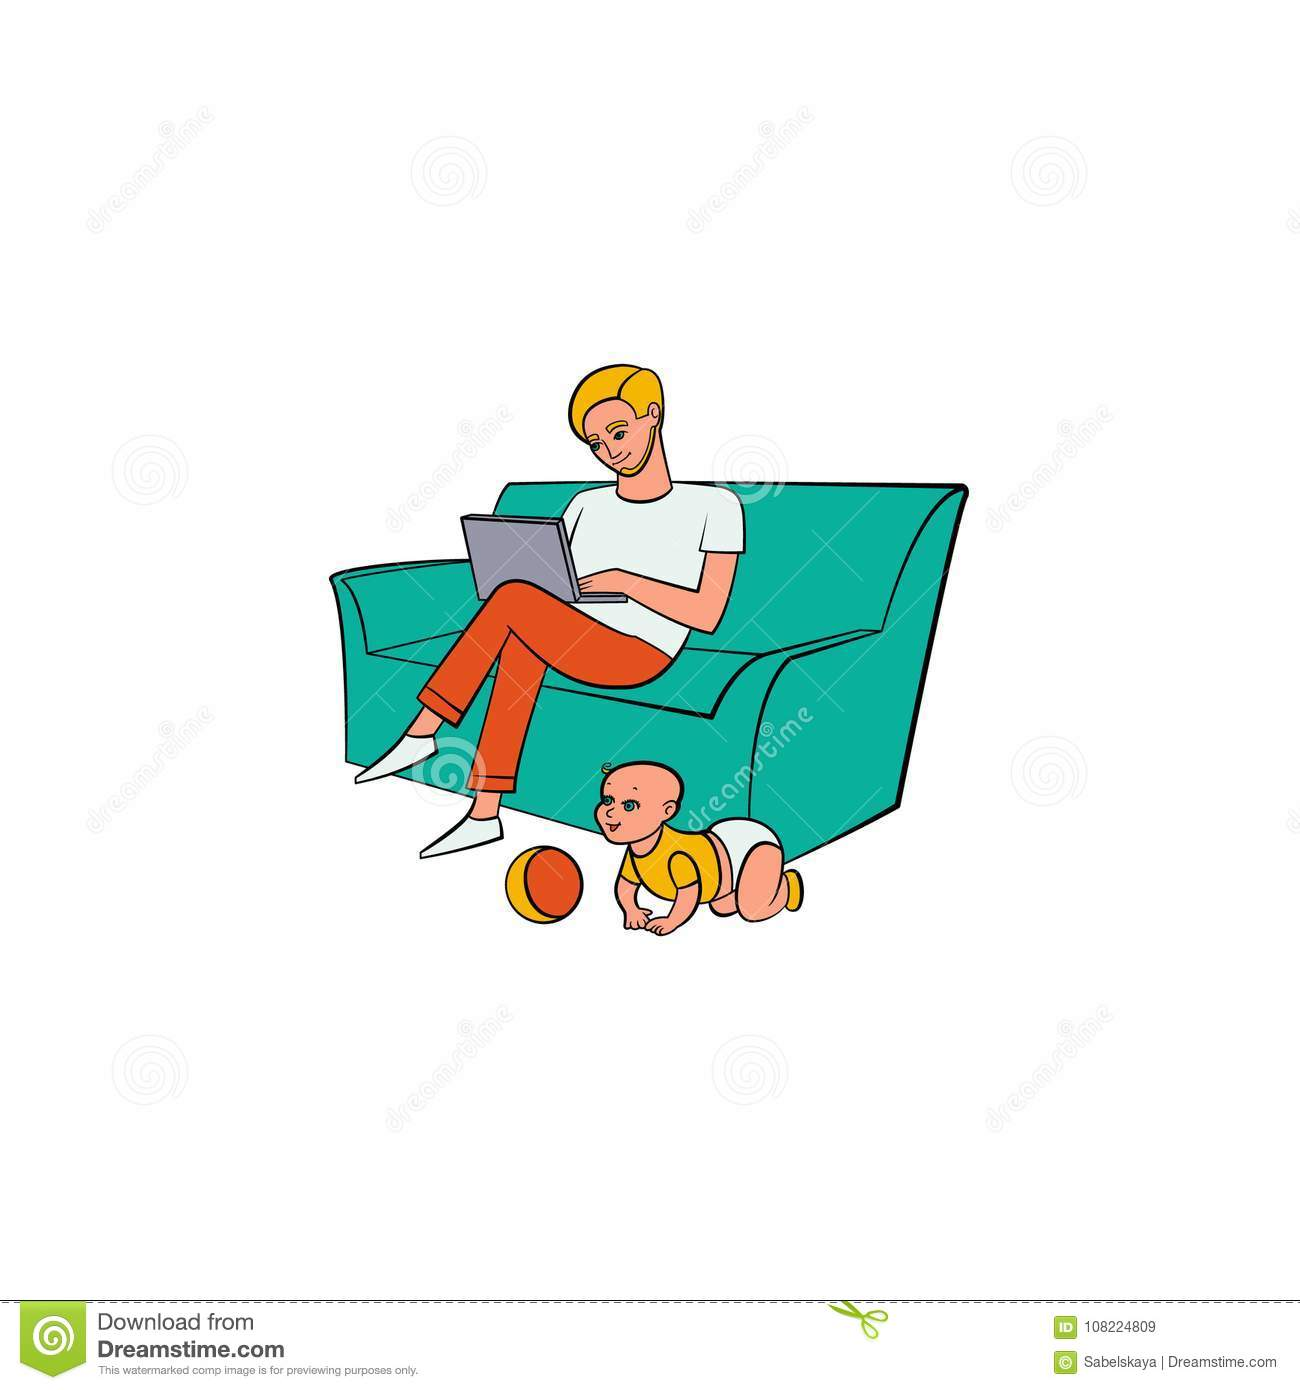 Adult work from home